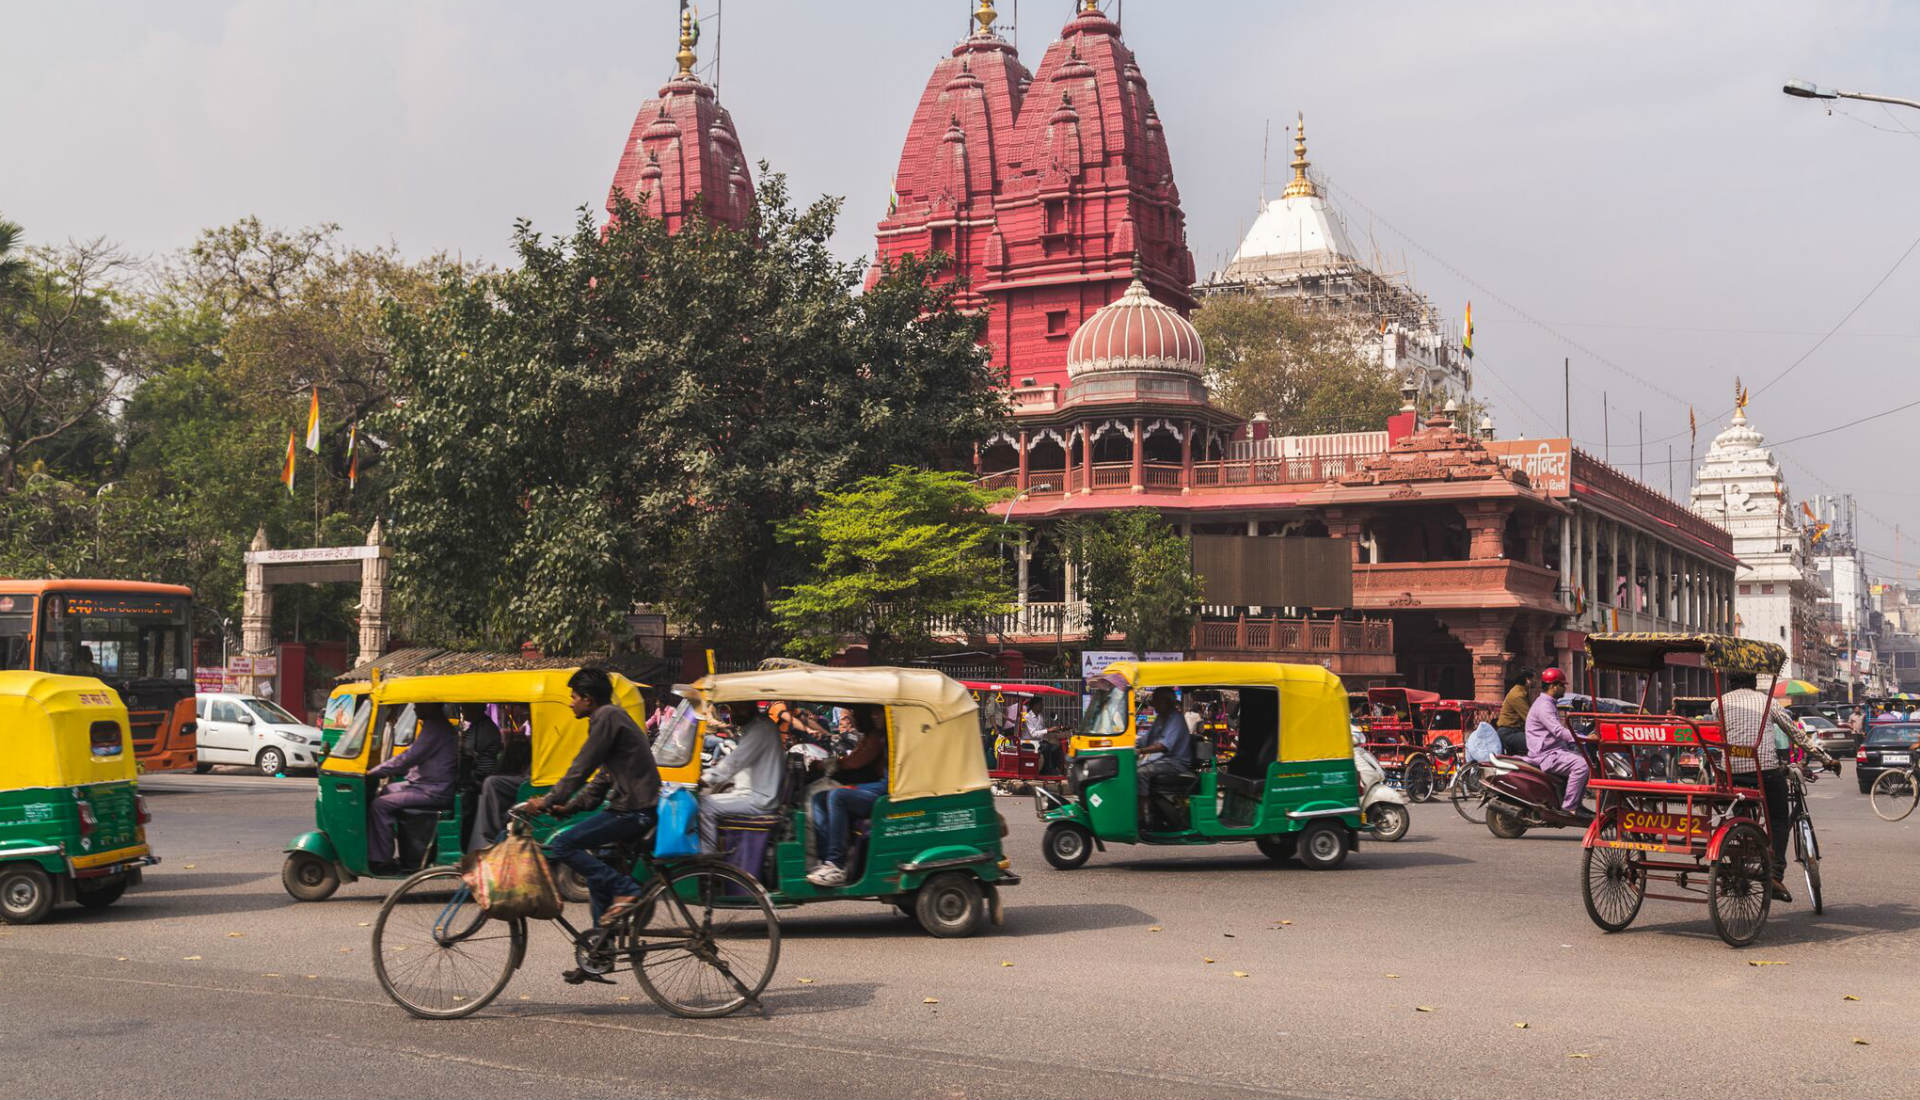 tuk tuks driving on roads with temples in background